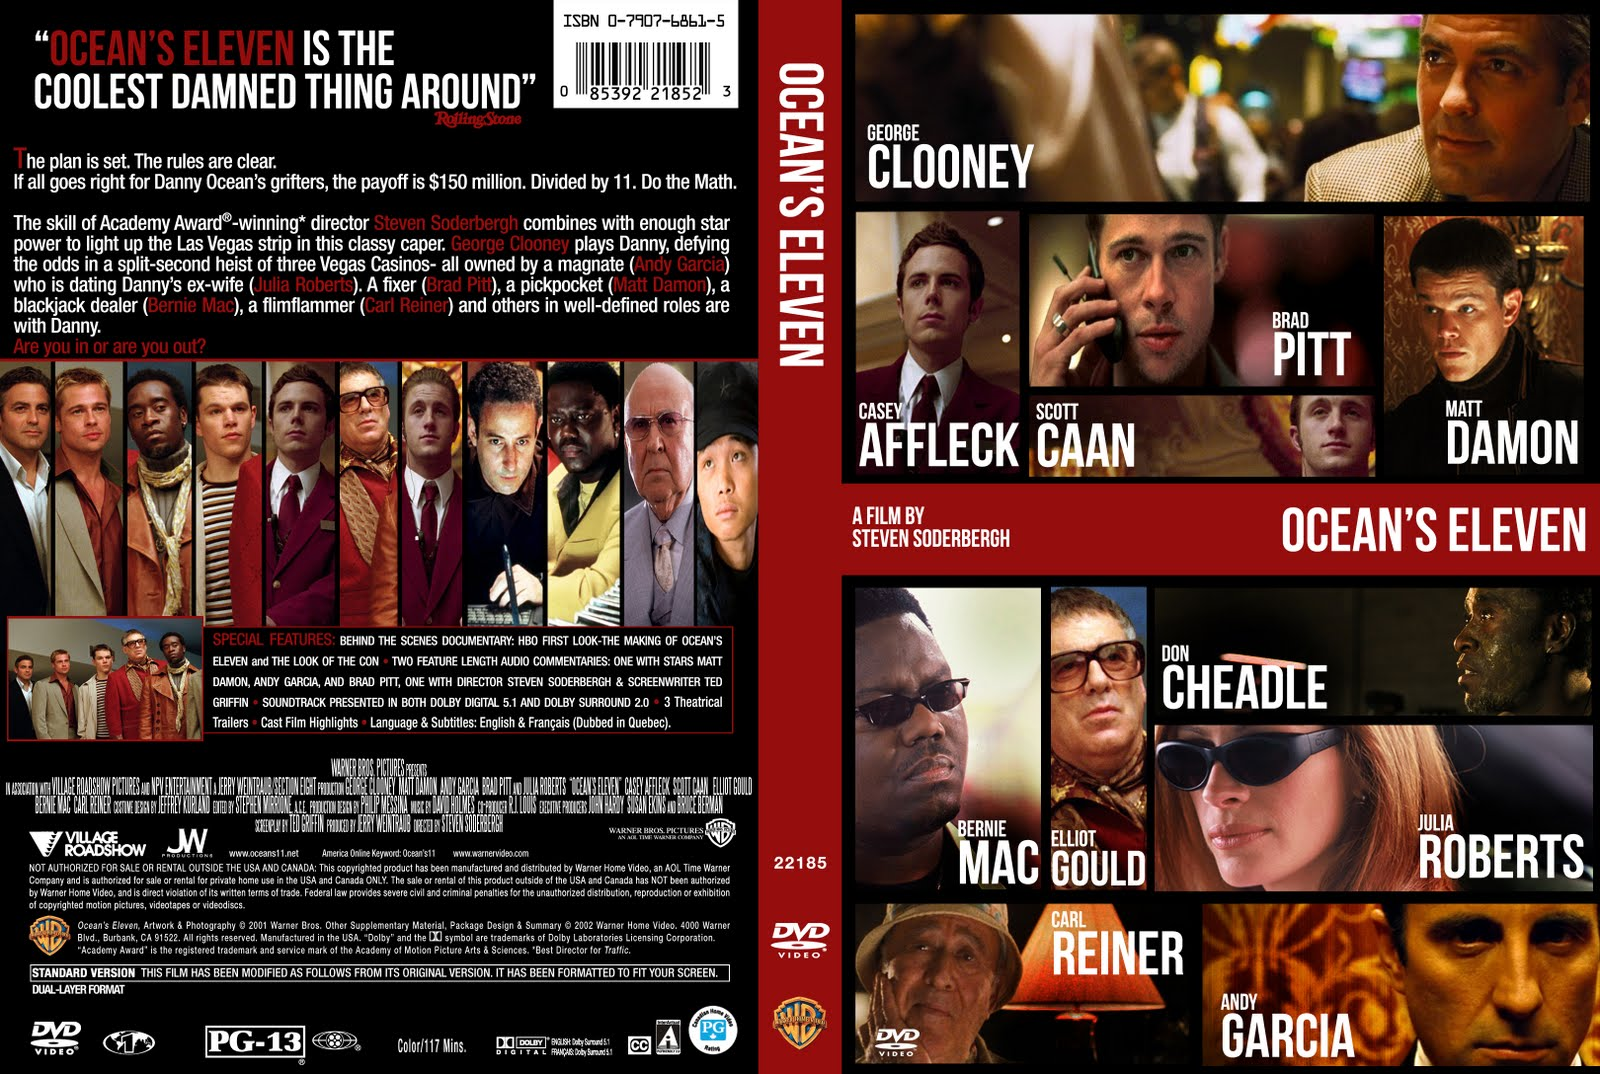 download oceans eleven 2001 720p brrip x264 english